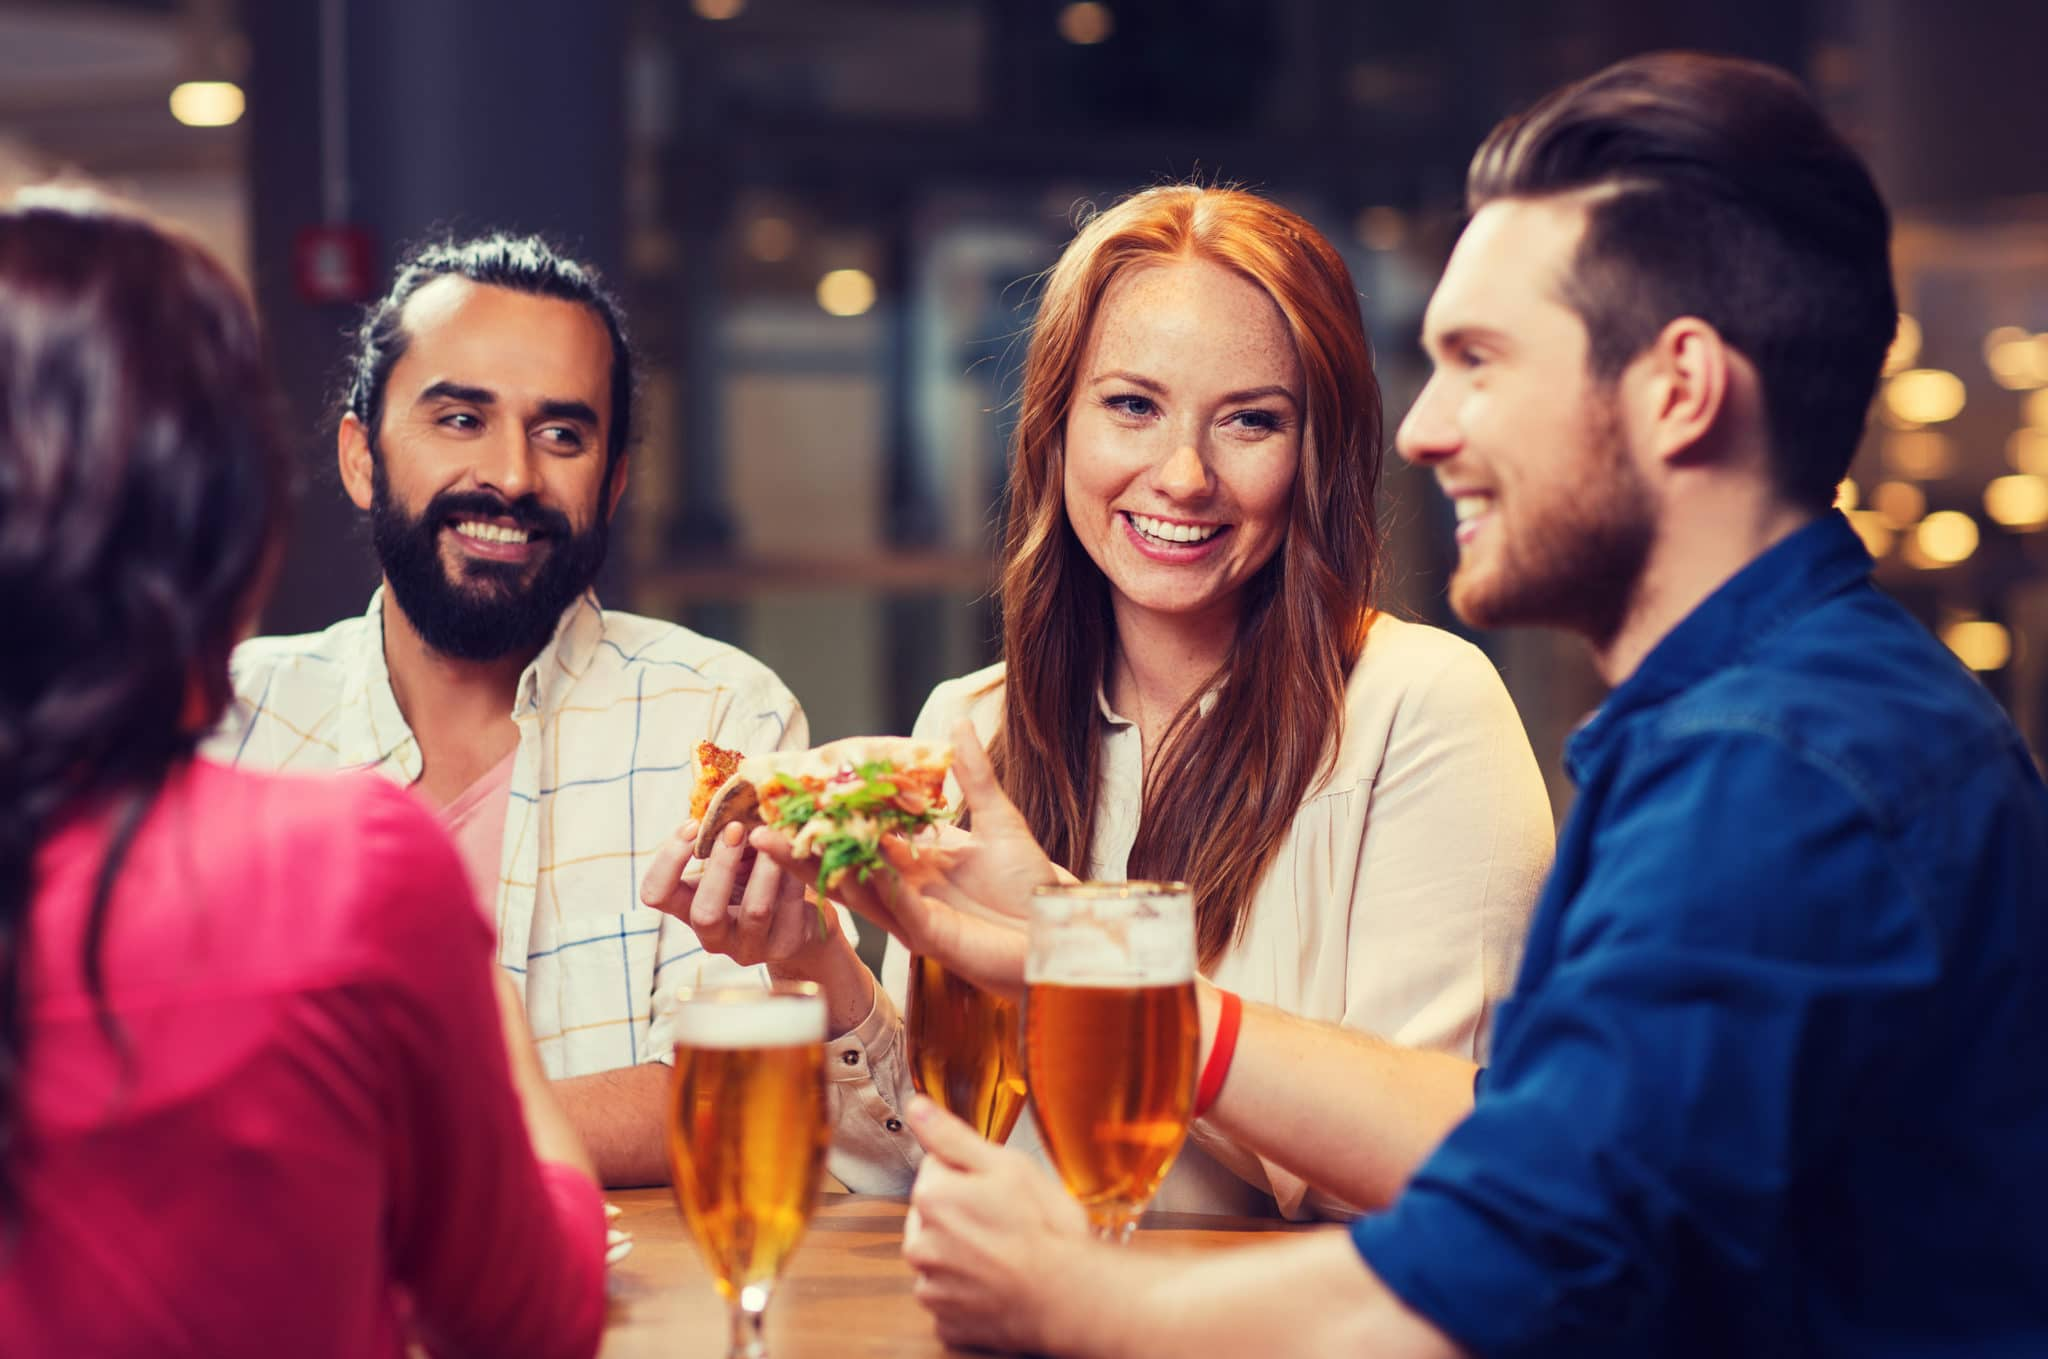 leisure, food and drinks, people and holidays concept restaurant beer sour - smiling